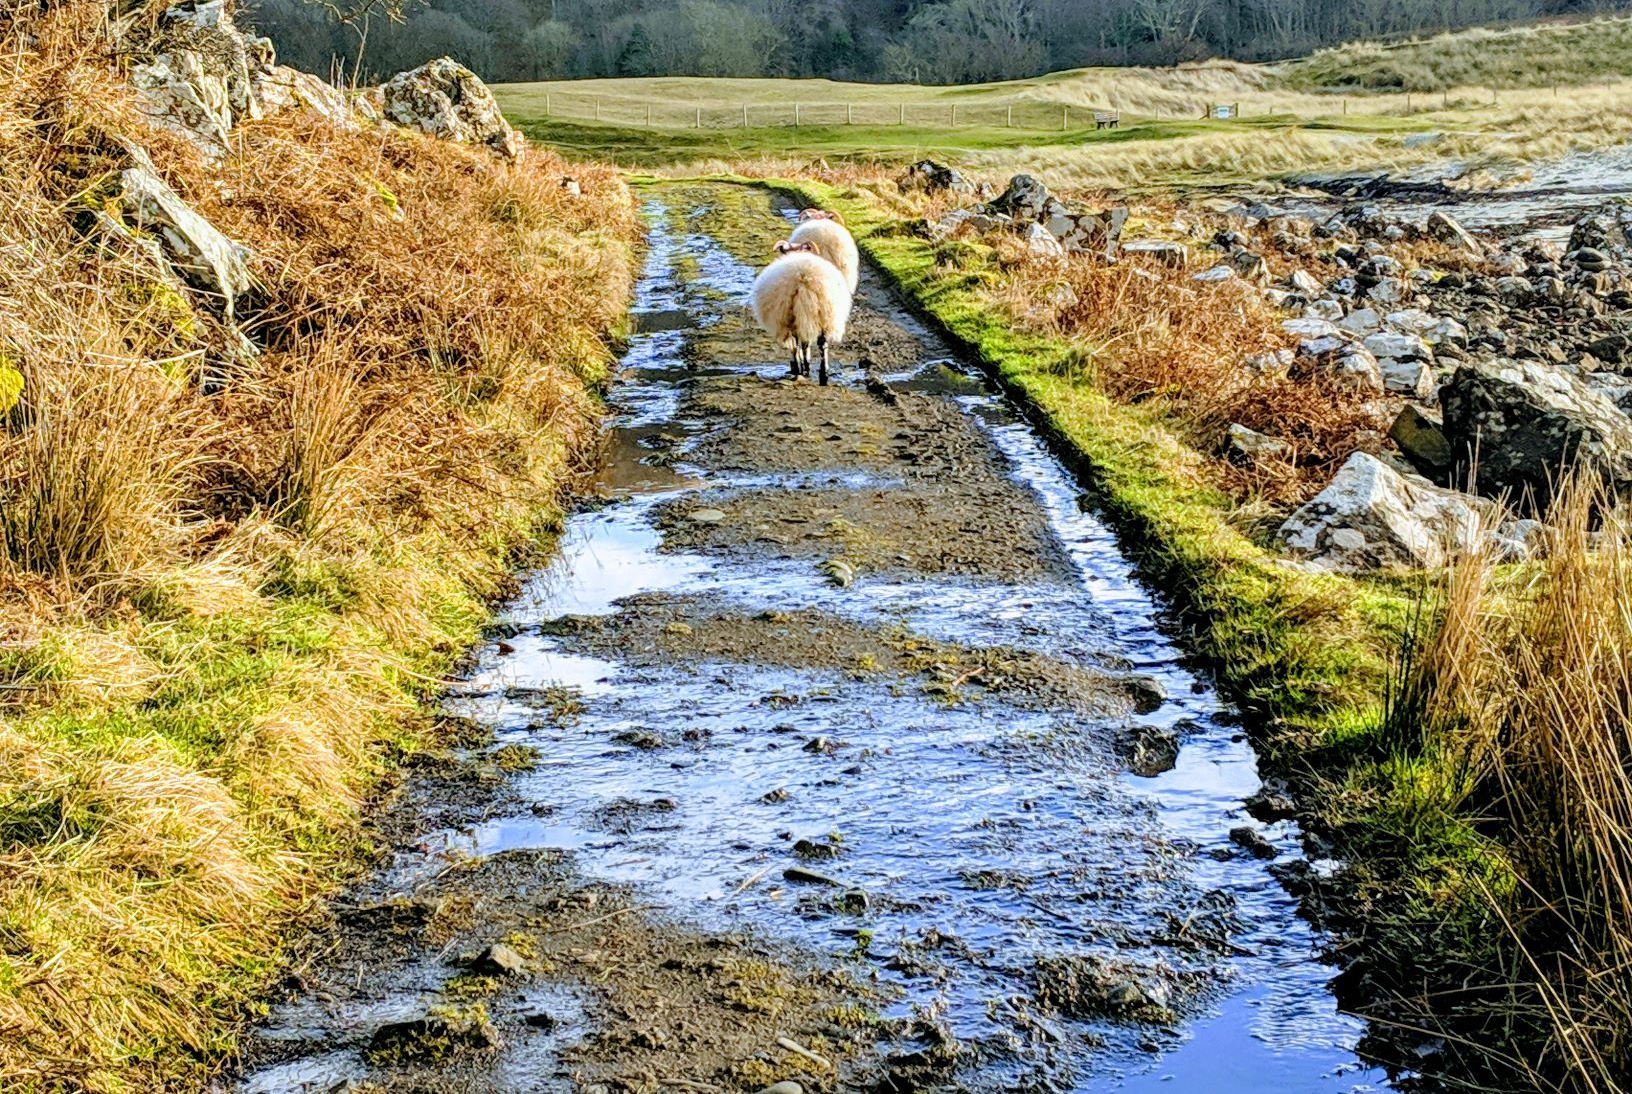 Sheep walking near Calgary Bay on the Isle of Mull, Scotland